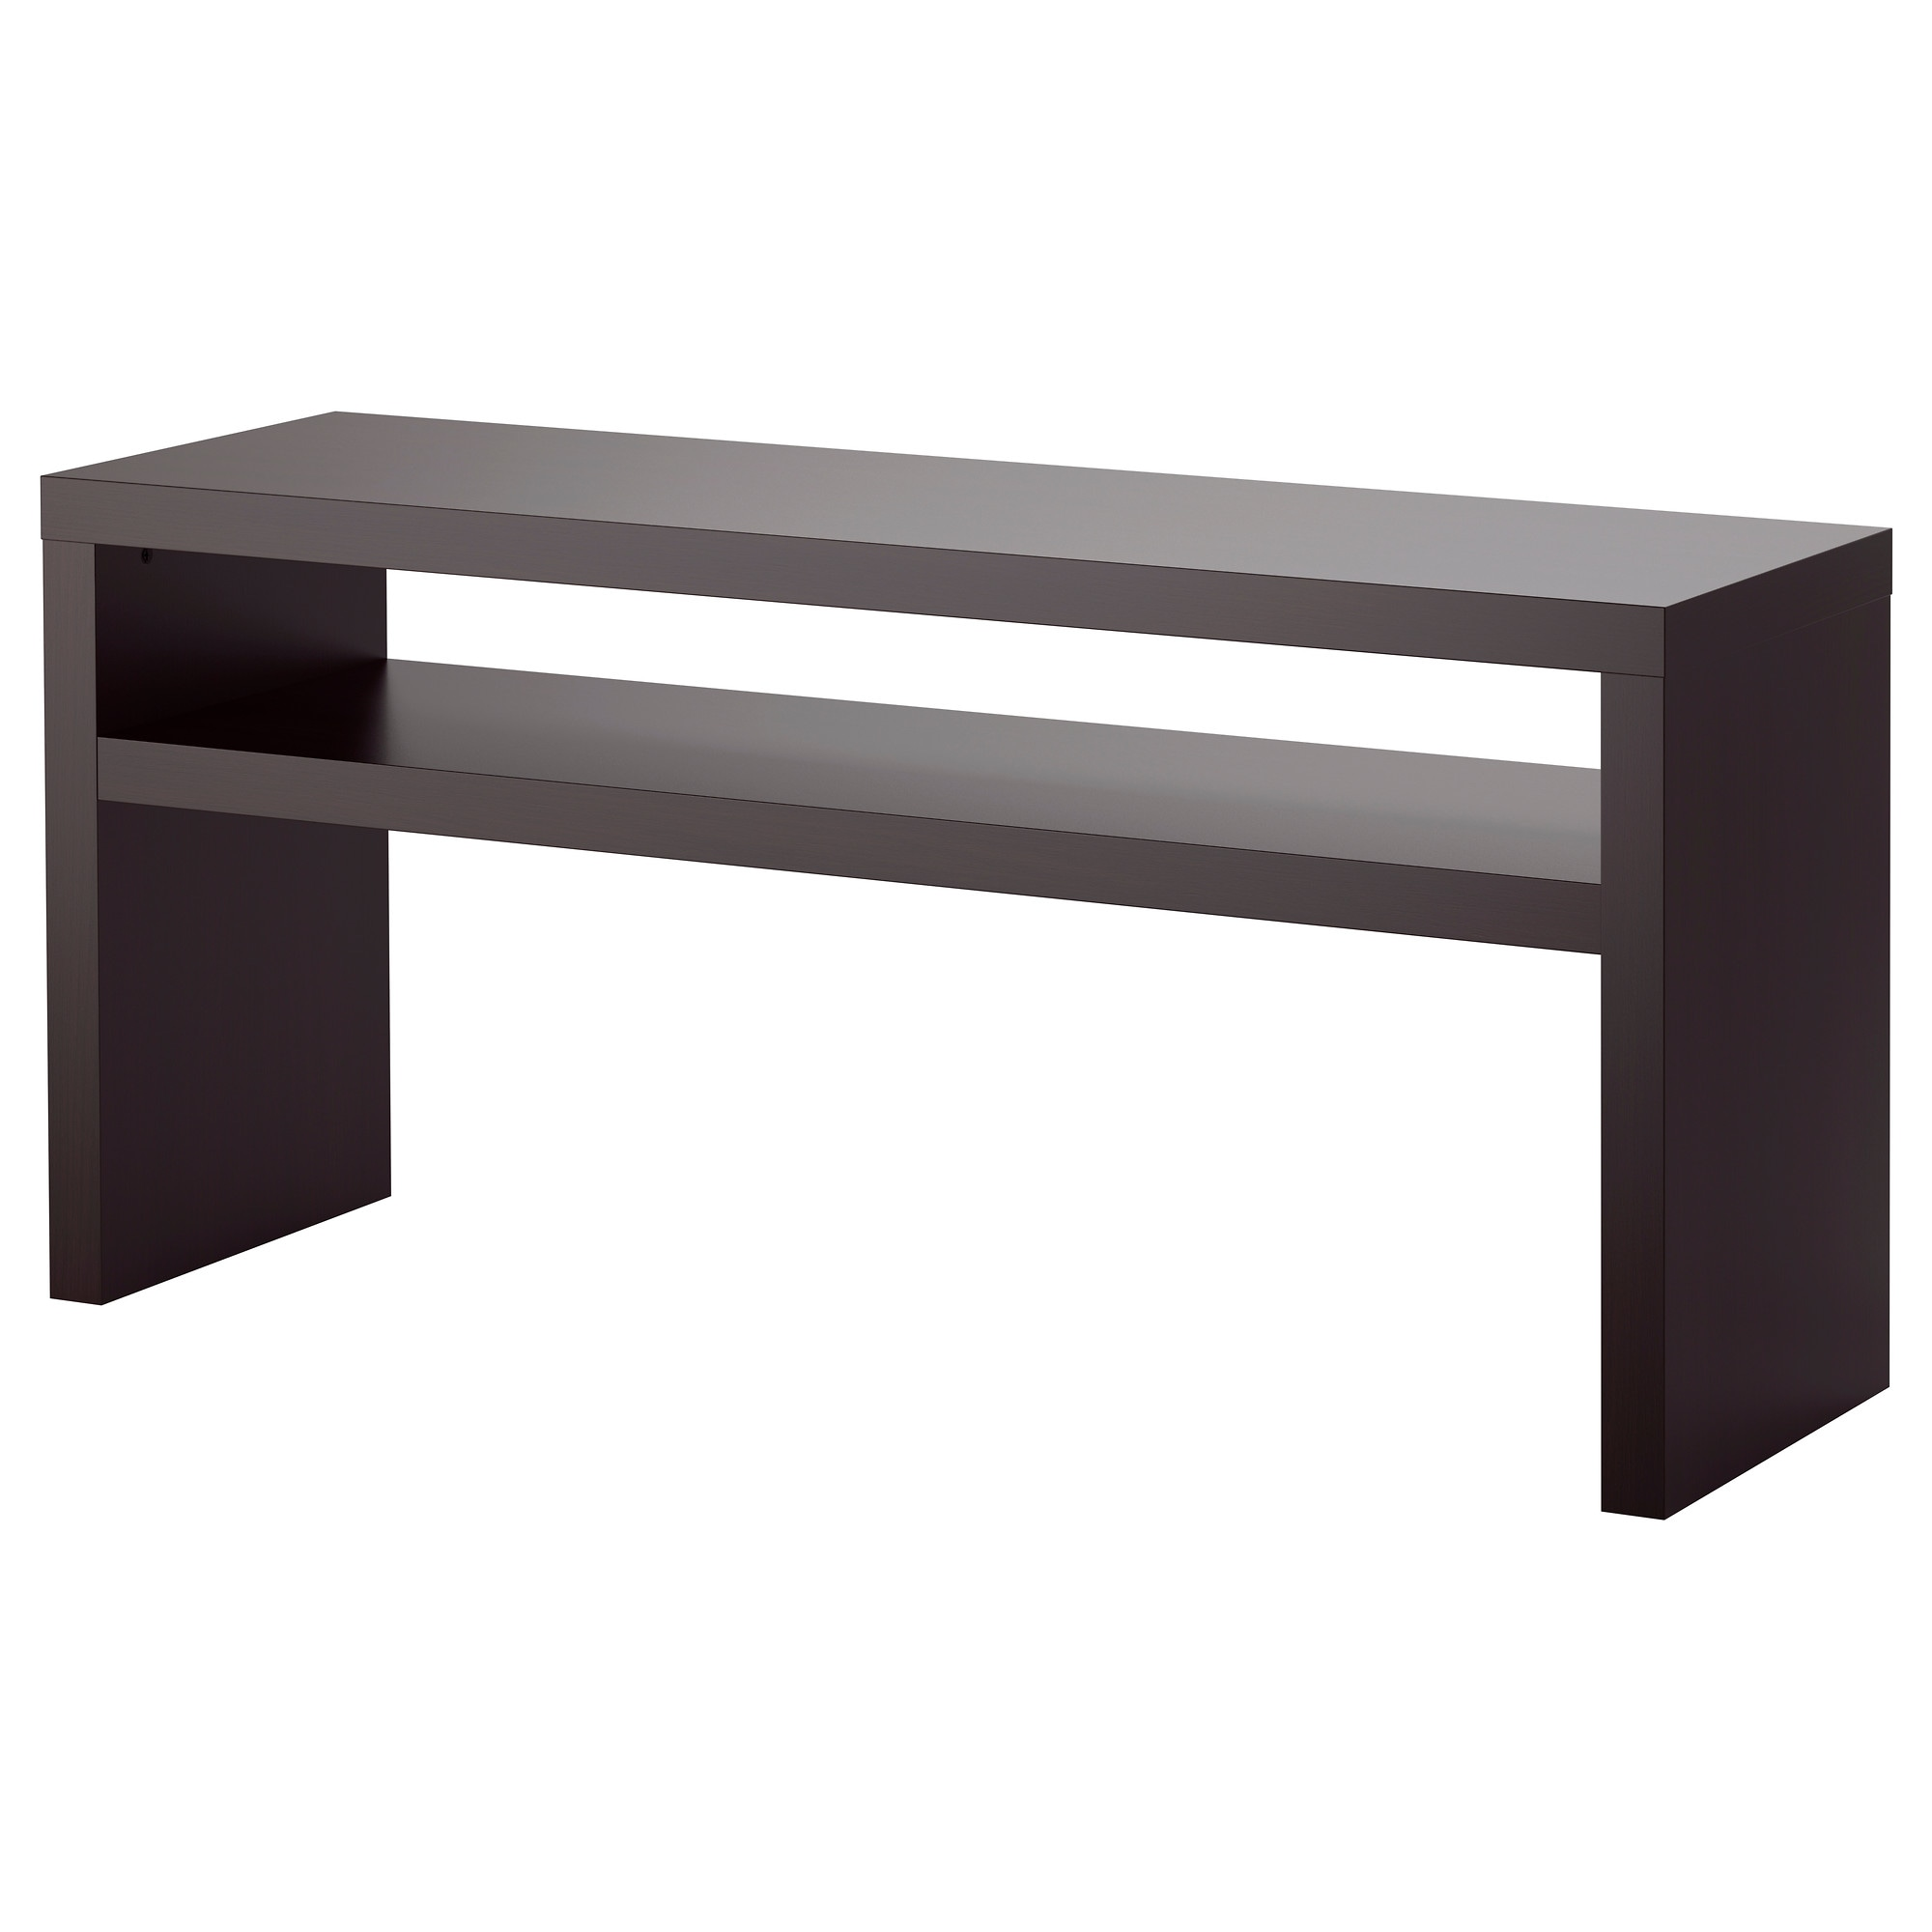 Black console table with storage - Lack Console Table Black Brown Length 55 1 8 Width